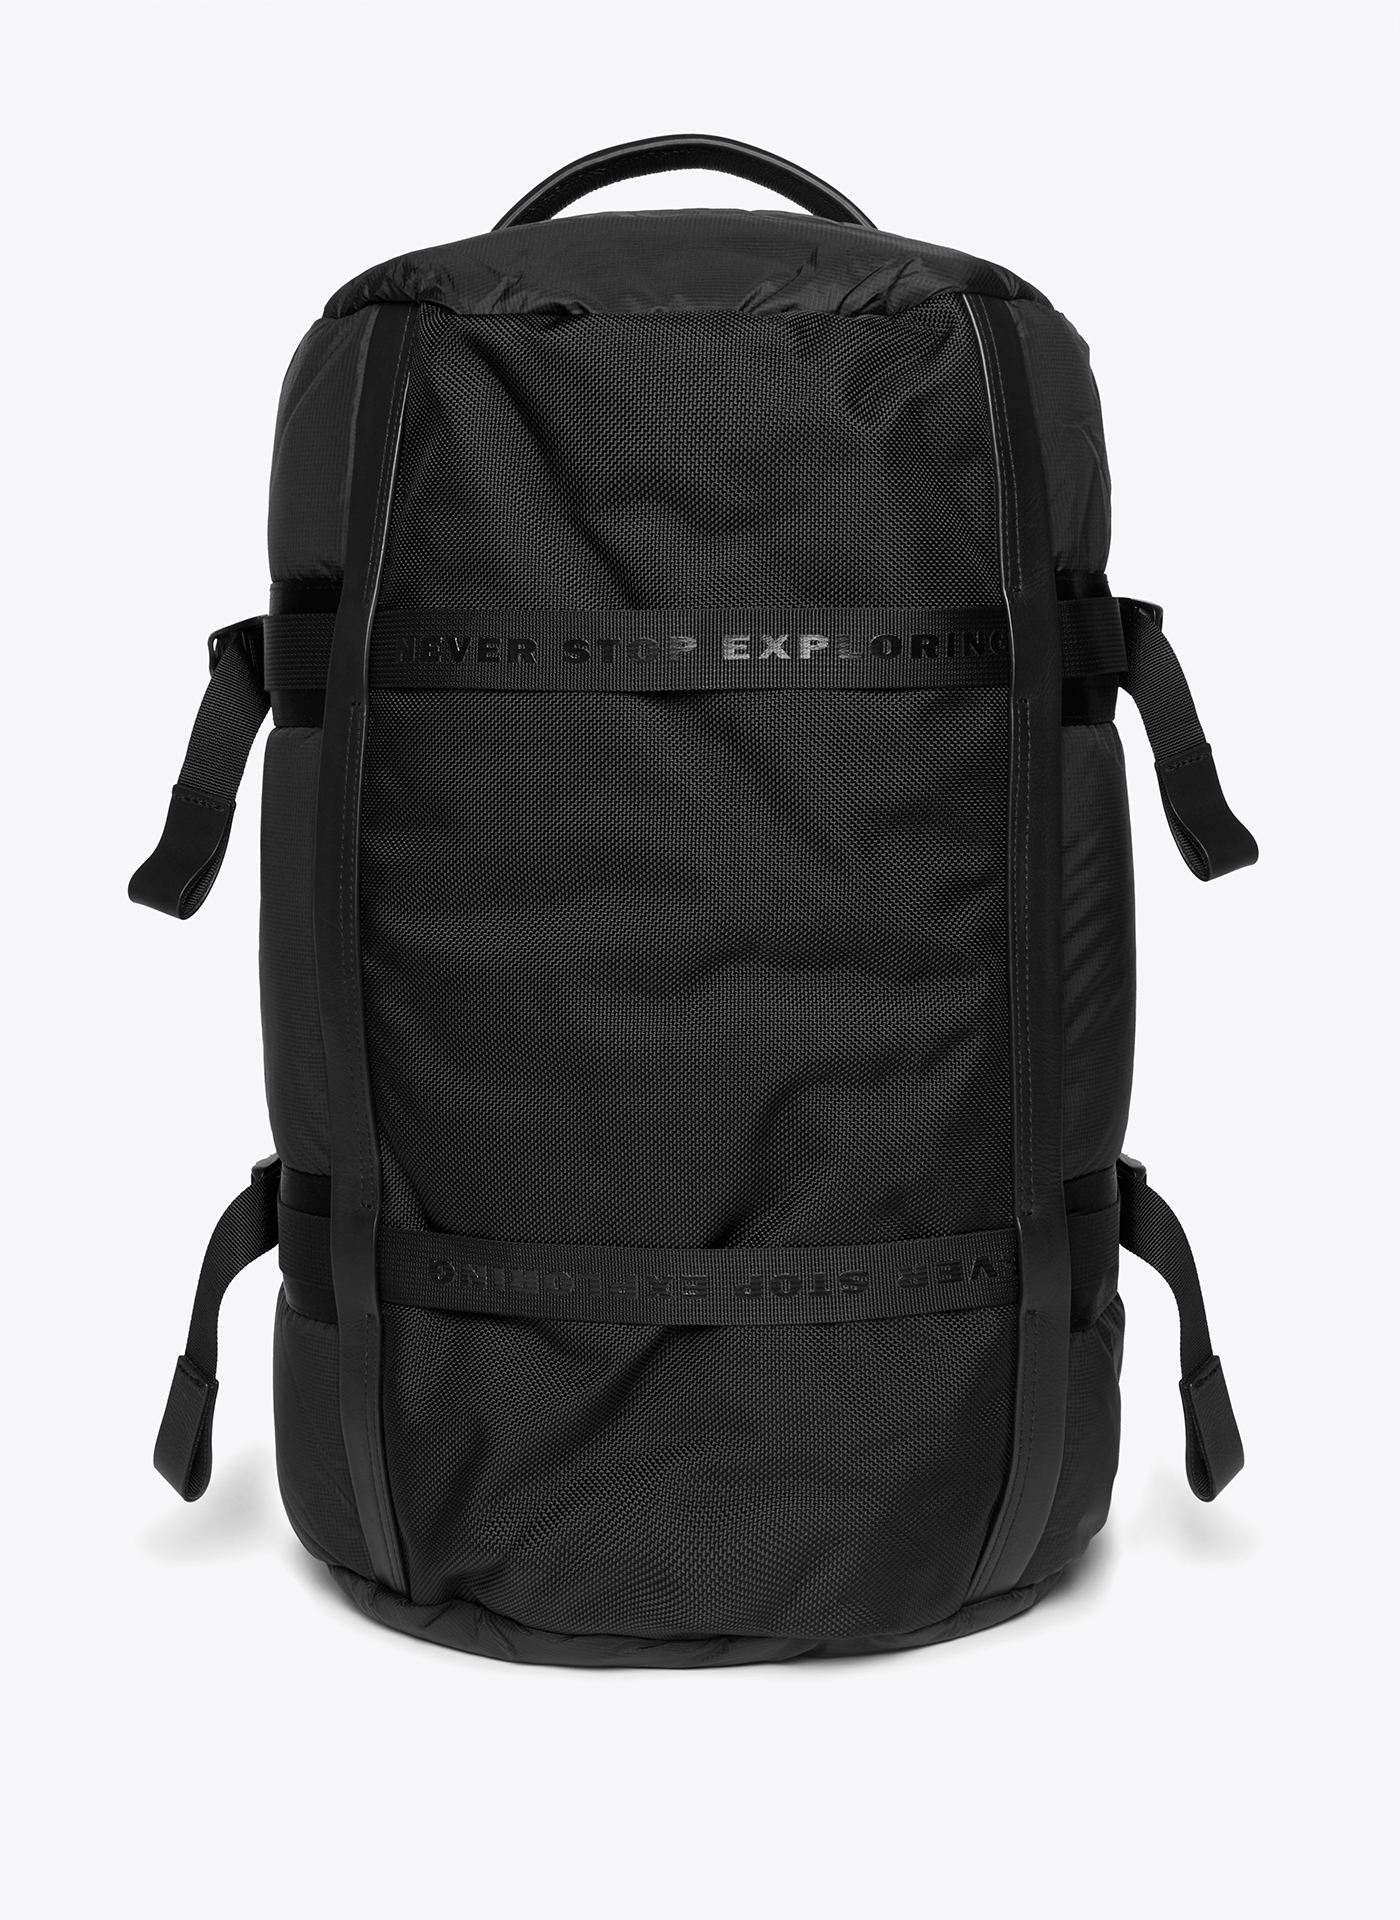 black backpack shot from the front on a white background